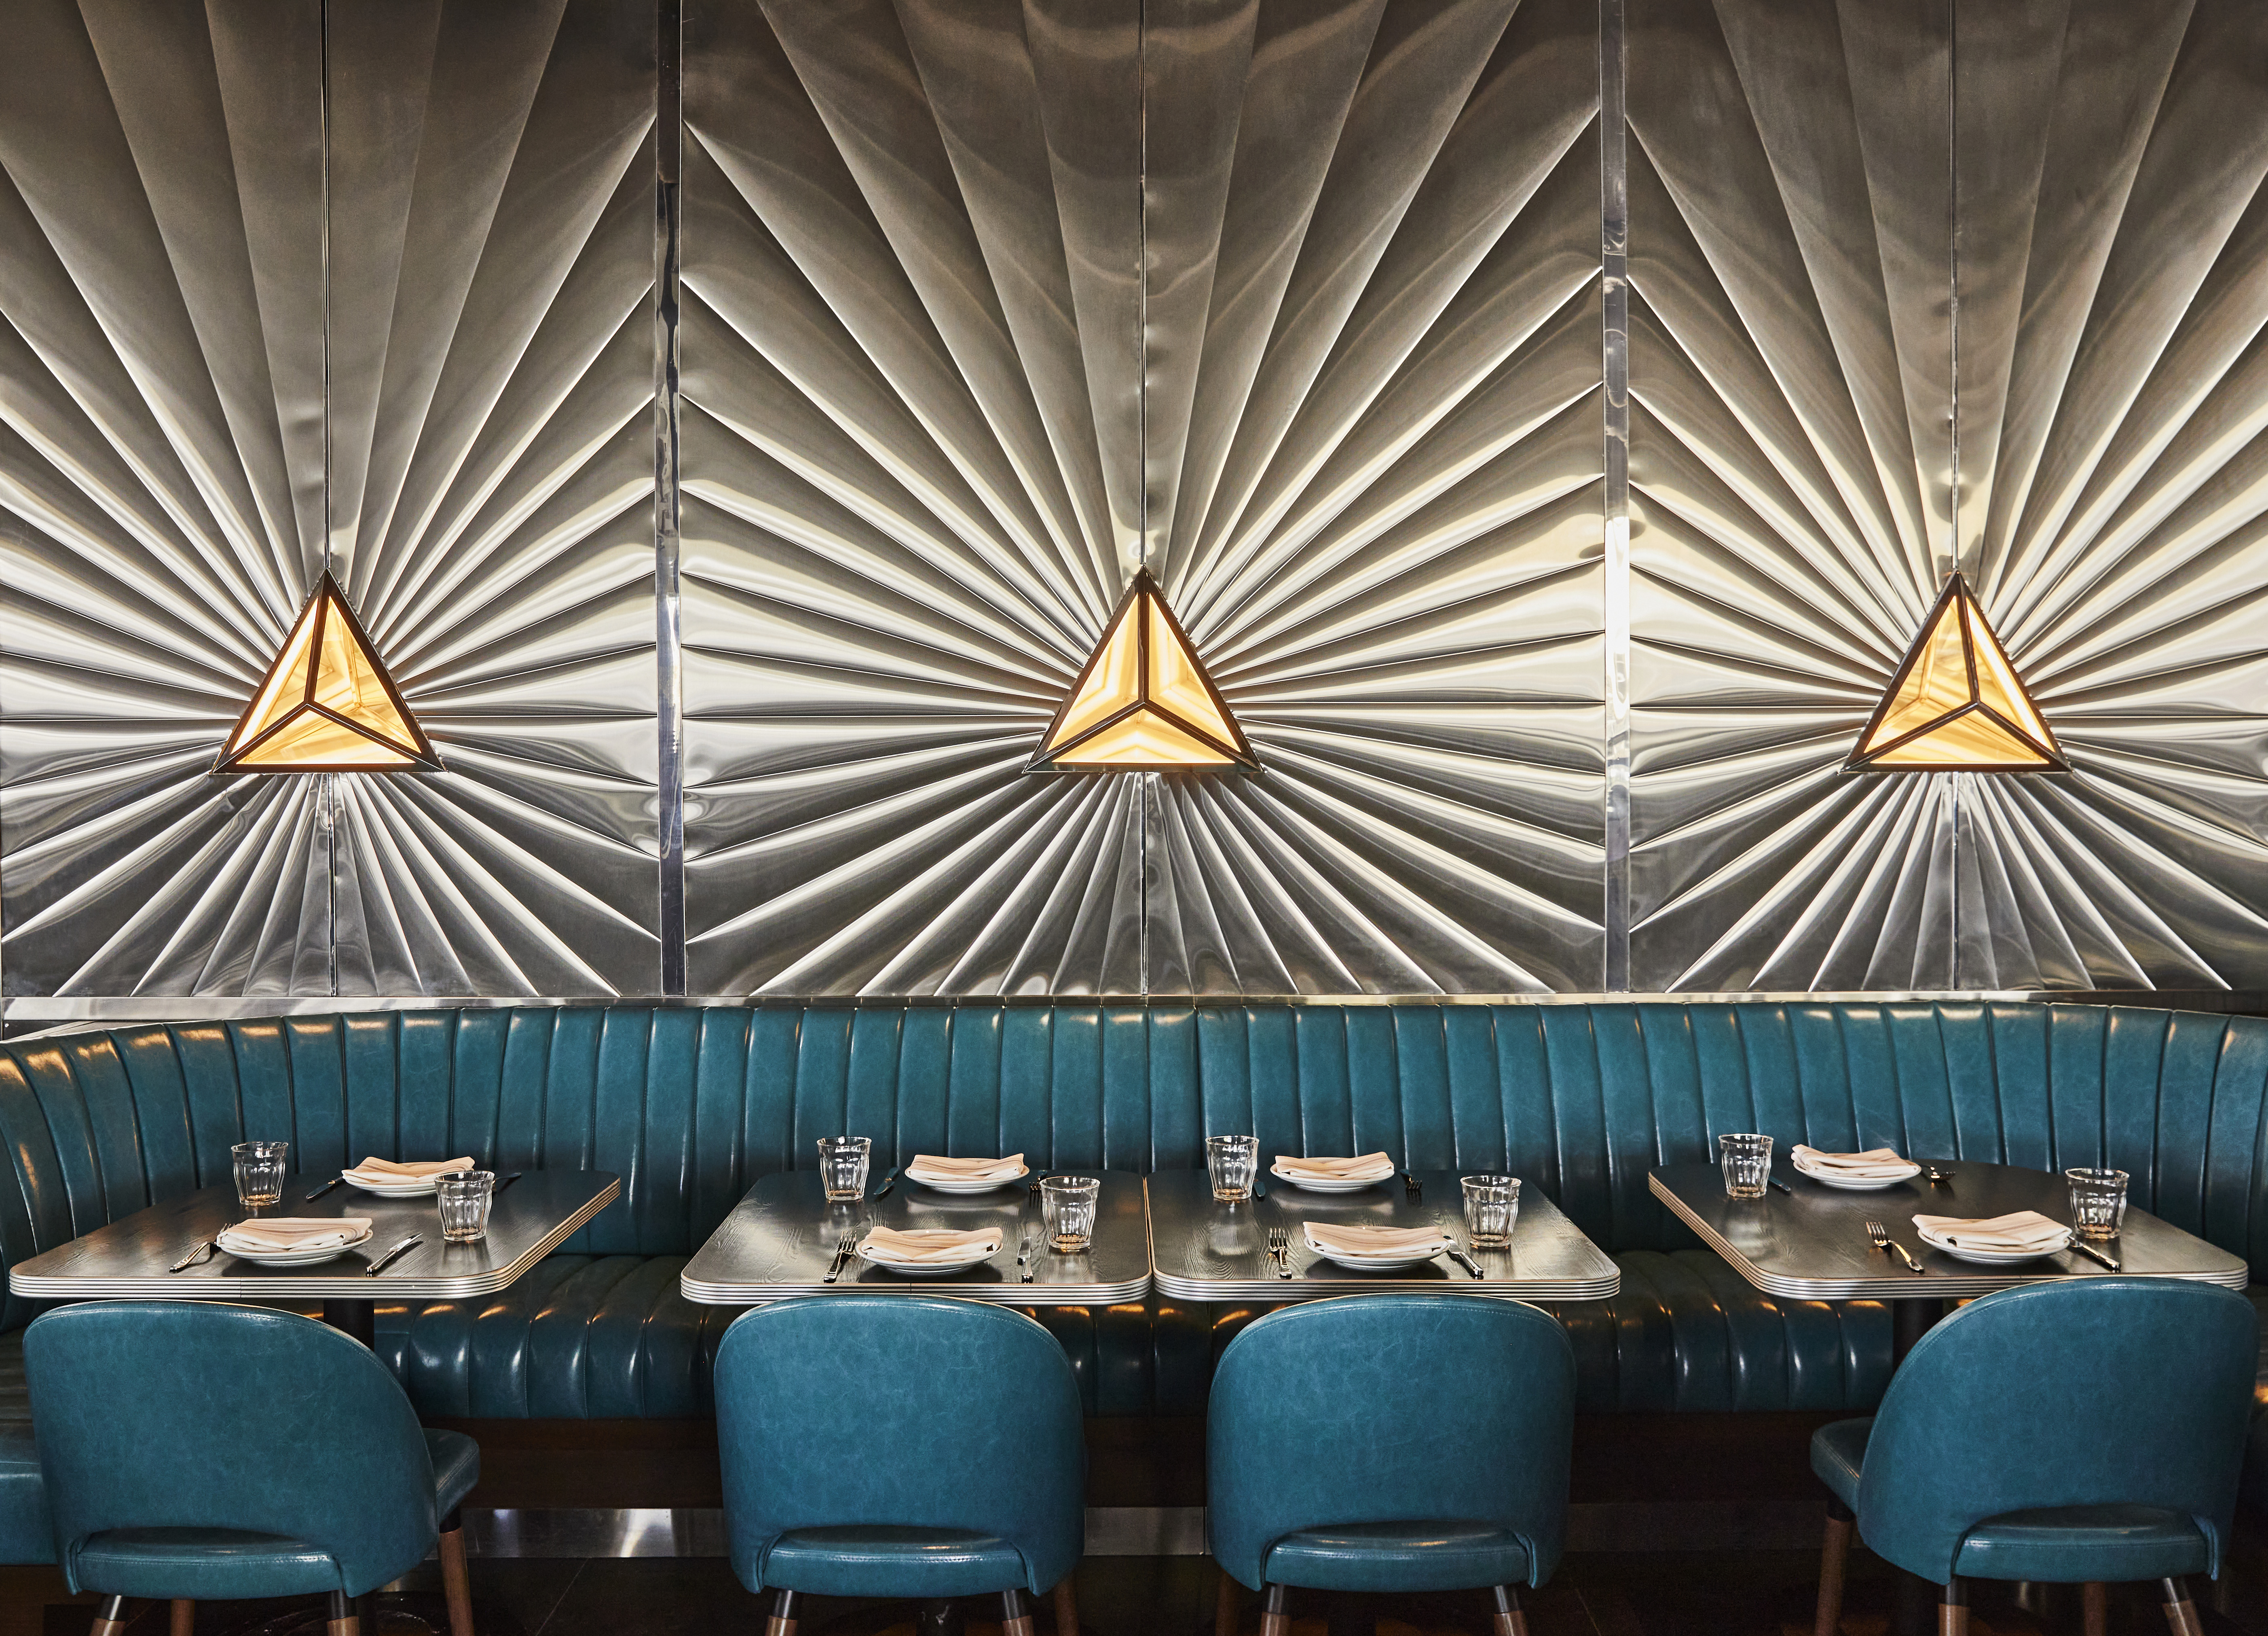 bright teal seating with sunburst meatal walls